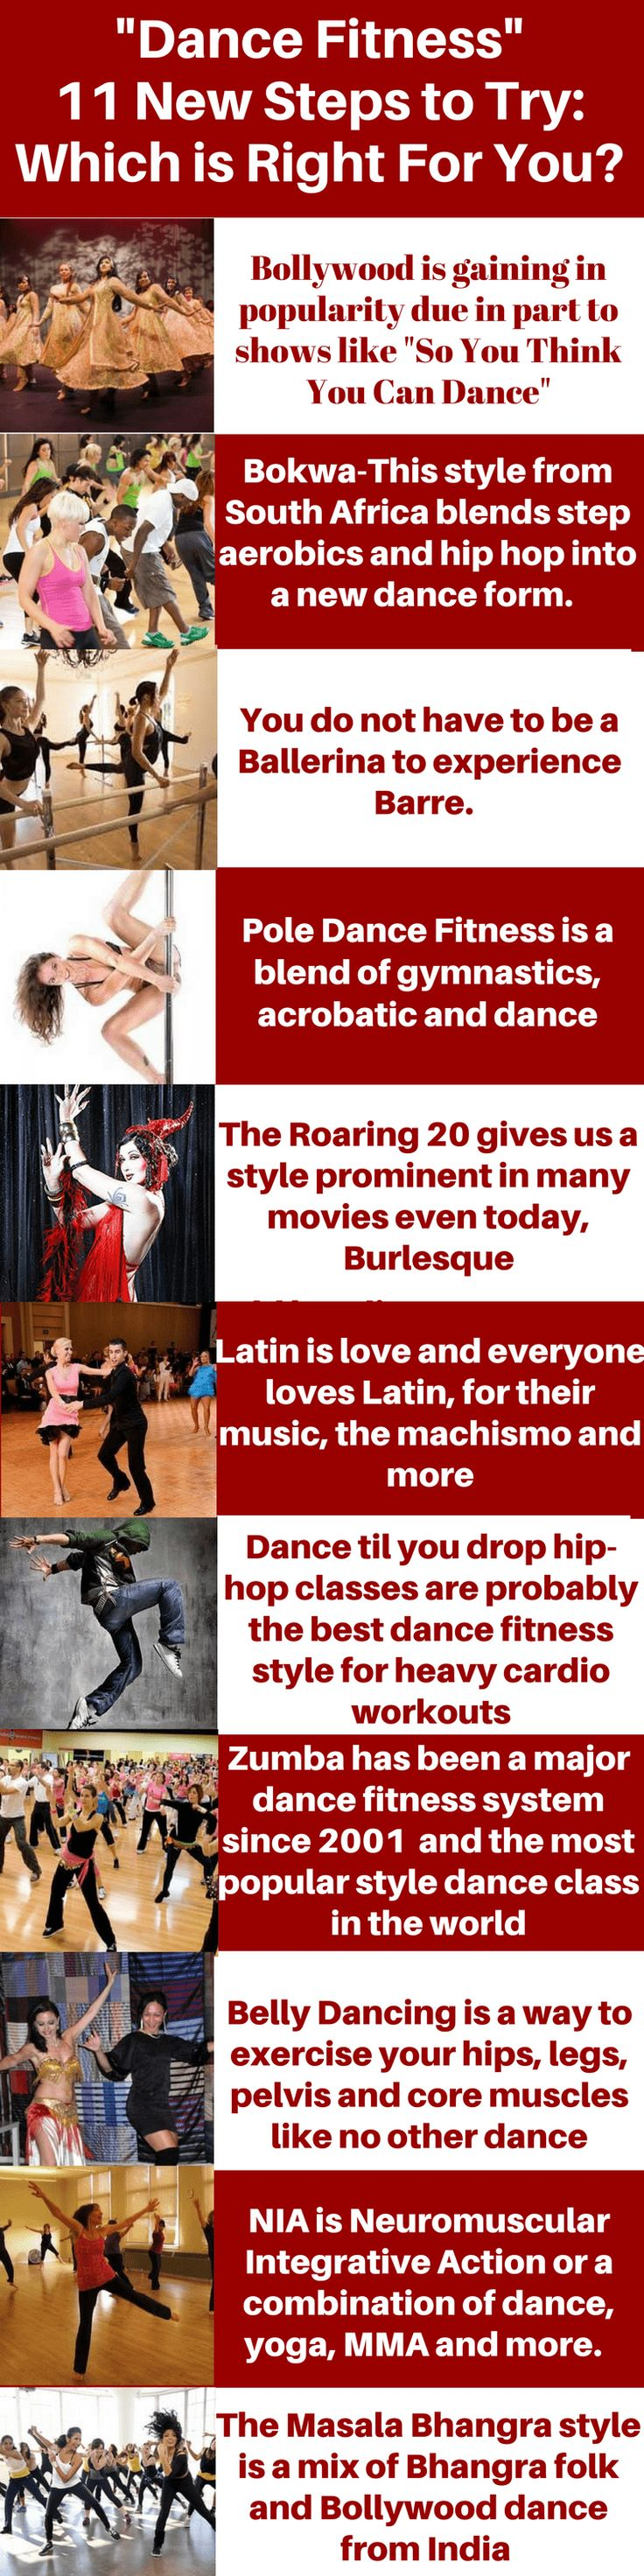 11 Dance Fitness Styles for Fun and Weight Loss Excercise    Excercise Motivation   Excercise Ball Workout   Excercise For Beginners   Excercise Motivation for Women   For Beginners At Home   For Beginners Gym   For Beginners Belly   For Beginners Over 50   Excercise Ball Workout For Men   Excercise Ball Workout For Beinngers   Excercise Ball Workout Muffintop   Muffintop Exercise   Muffintop Challenge   Muffin top Workout